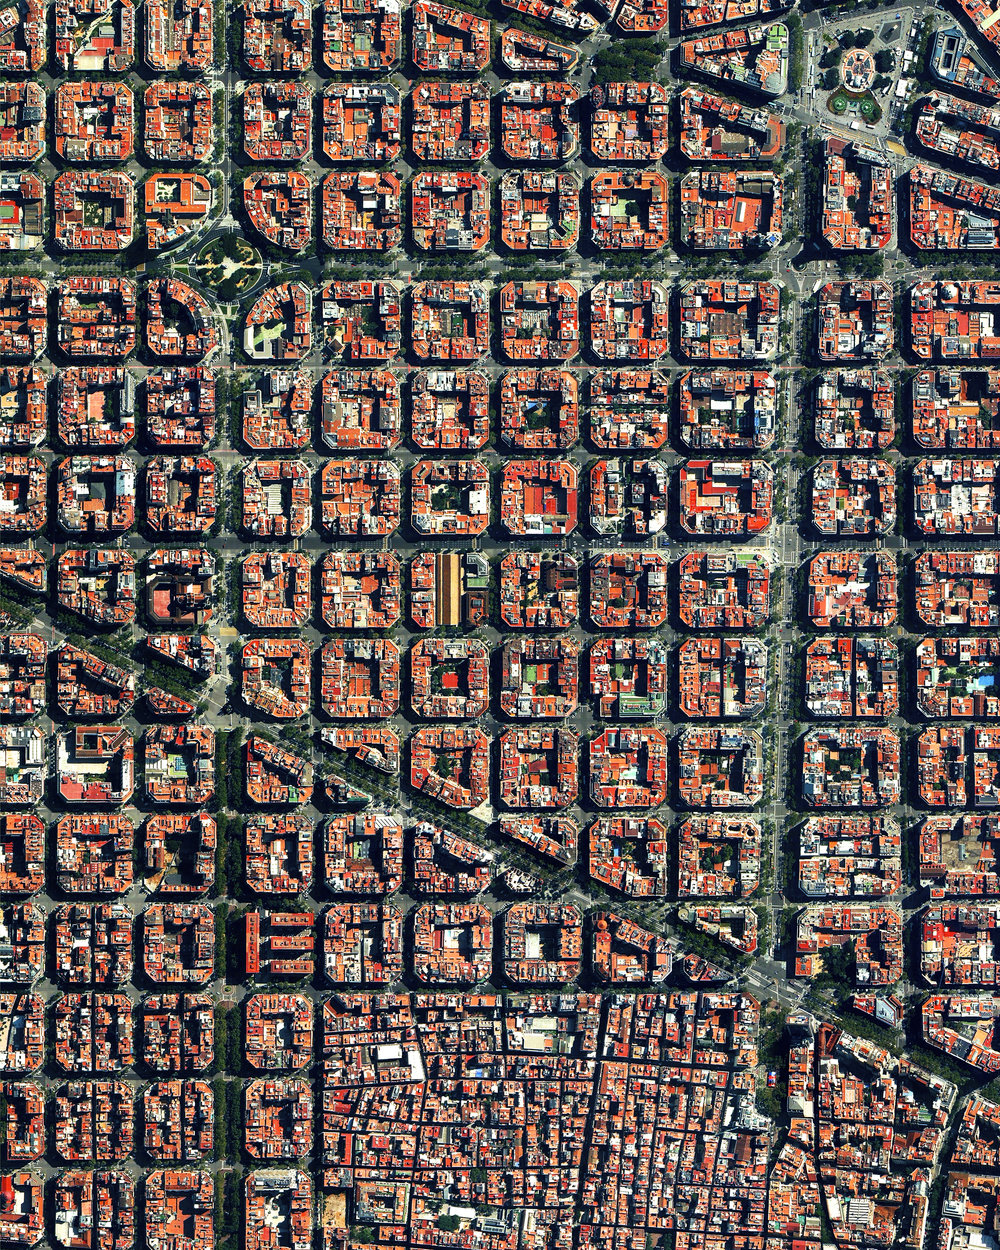 The Eixample district in Barcelona, Spain, is characterized by its strict grid pattern and apartments with communal courtyards. This thoughtful and visionary design was the work of Ildefons Cerdà. His plan features broad streets that widen at octagonal intersections to create greater visibility with increased sunlight, better ventilation, and more space for short-term parking. This image is on display right now at our exhibition at theprintspace in Shoreditch, London. We're also selling prints of it, and – thanks to theprintspace – we are able to offer FREE shipping throughout Europe during the exhibition, which ends November 26th! Visit  dailyoverview.com/printshop/country  to take advantage of this exclusive offer.  41°23′27′′N, 2°09′47′′E  Source imagery: DigitalGlobe